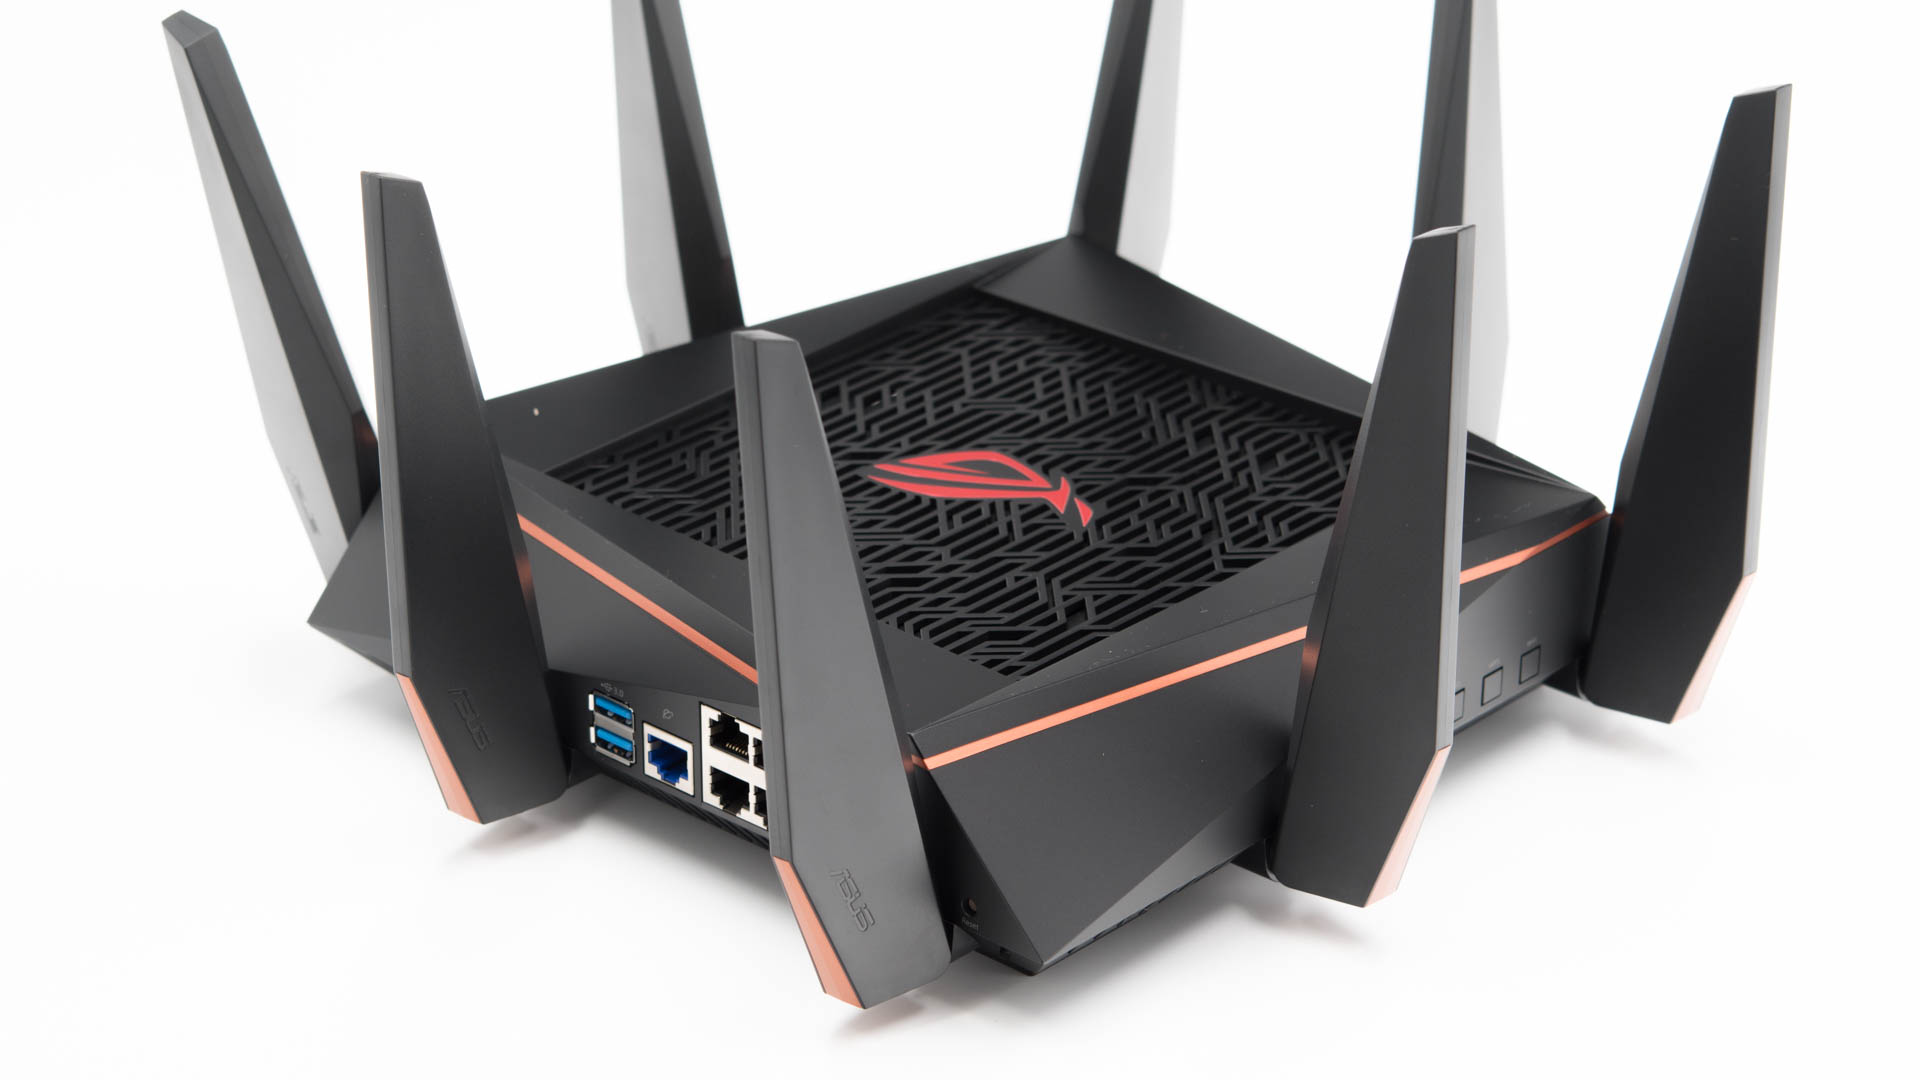 der asus rog rapture gt ac5300 im test das monster unter. Black Bedroom Furniture Sets. Home Design Ideas